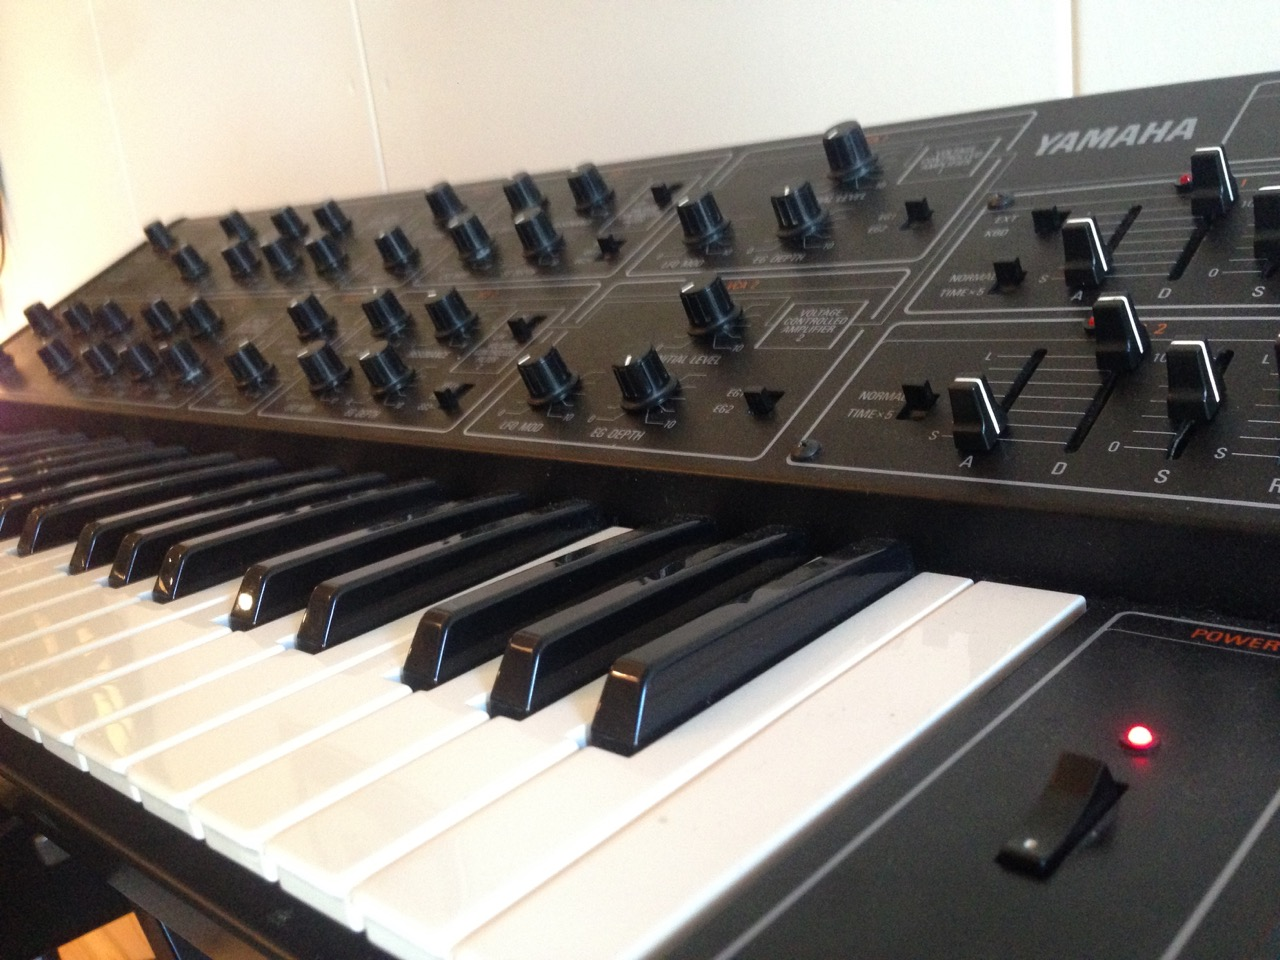 Sweet Yamaha CS15 duophonic synth. Vintage and sweet sounds! Great company for the micro moog.